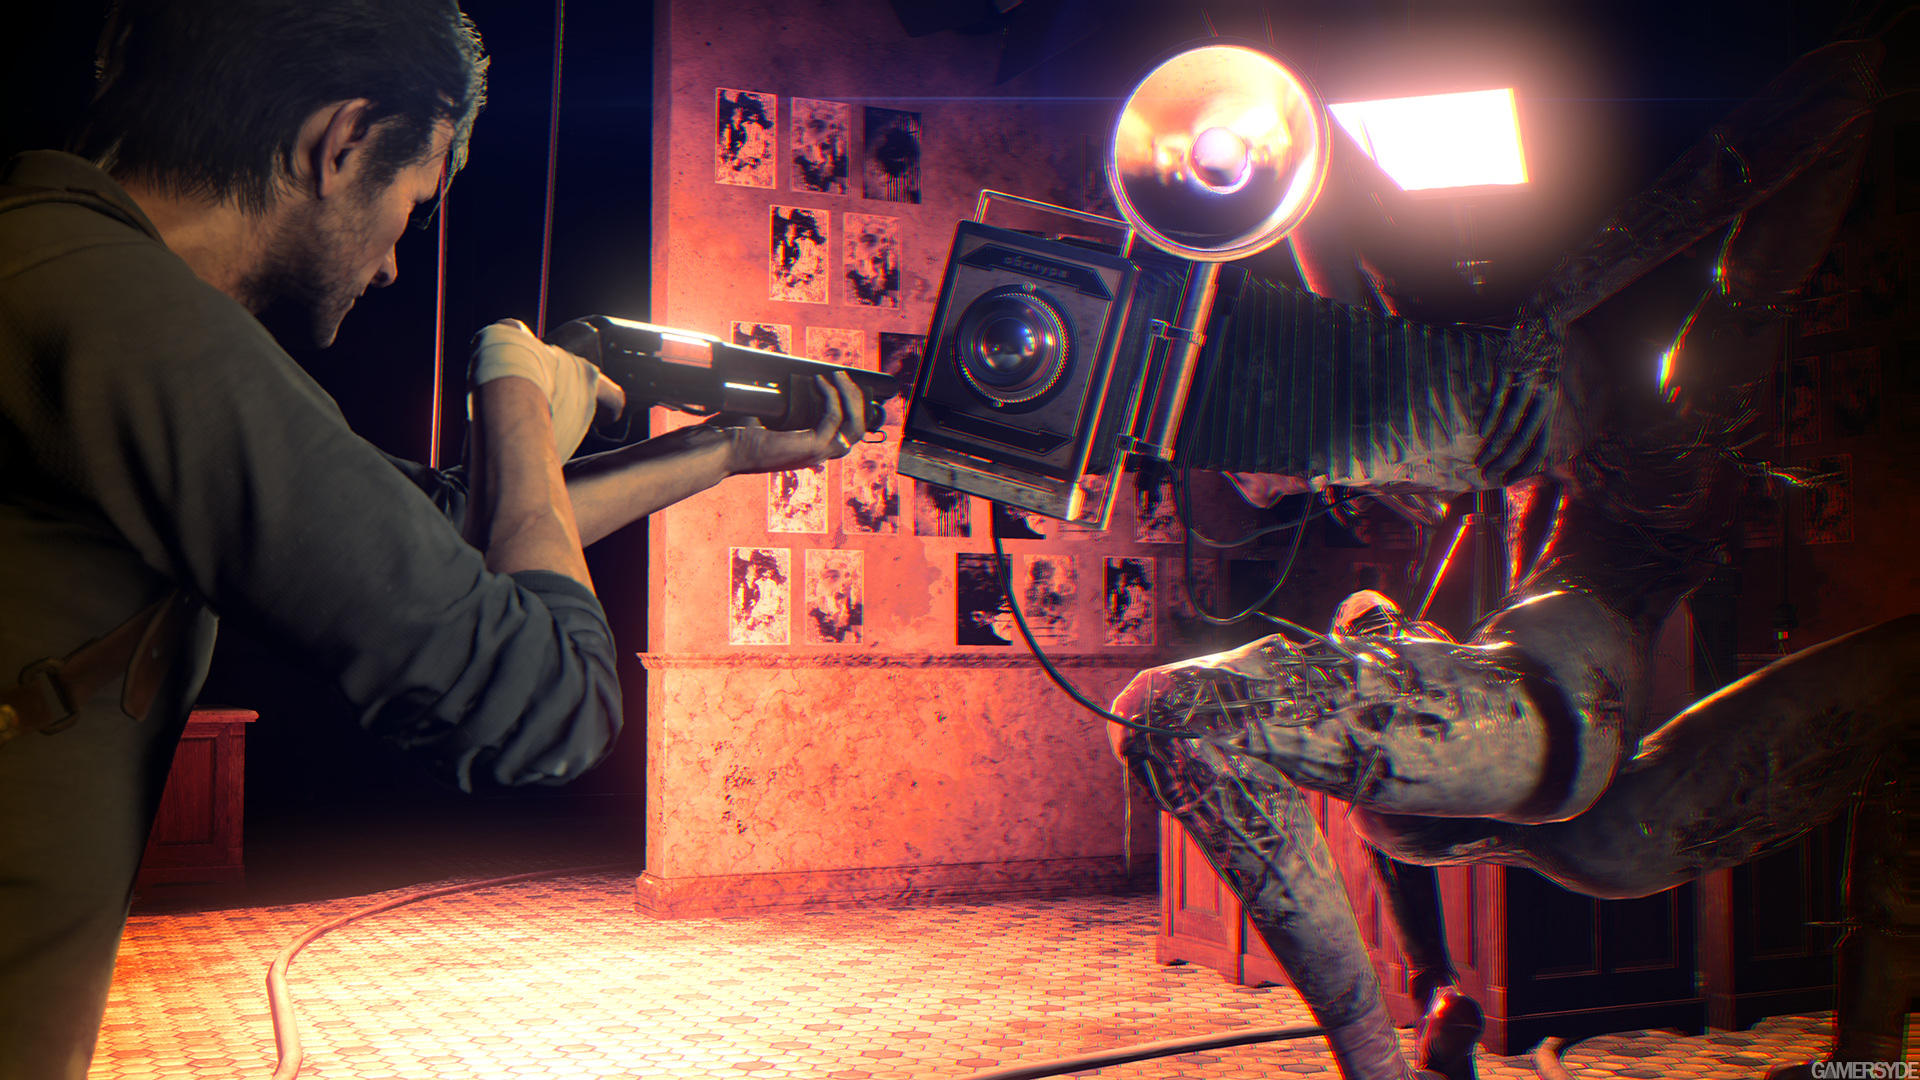 image_the_evil_within_2-35705-3886_0004.